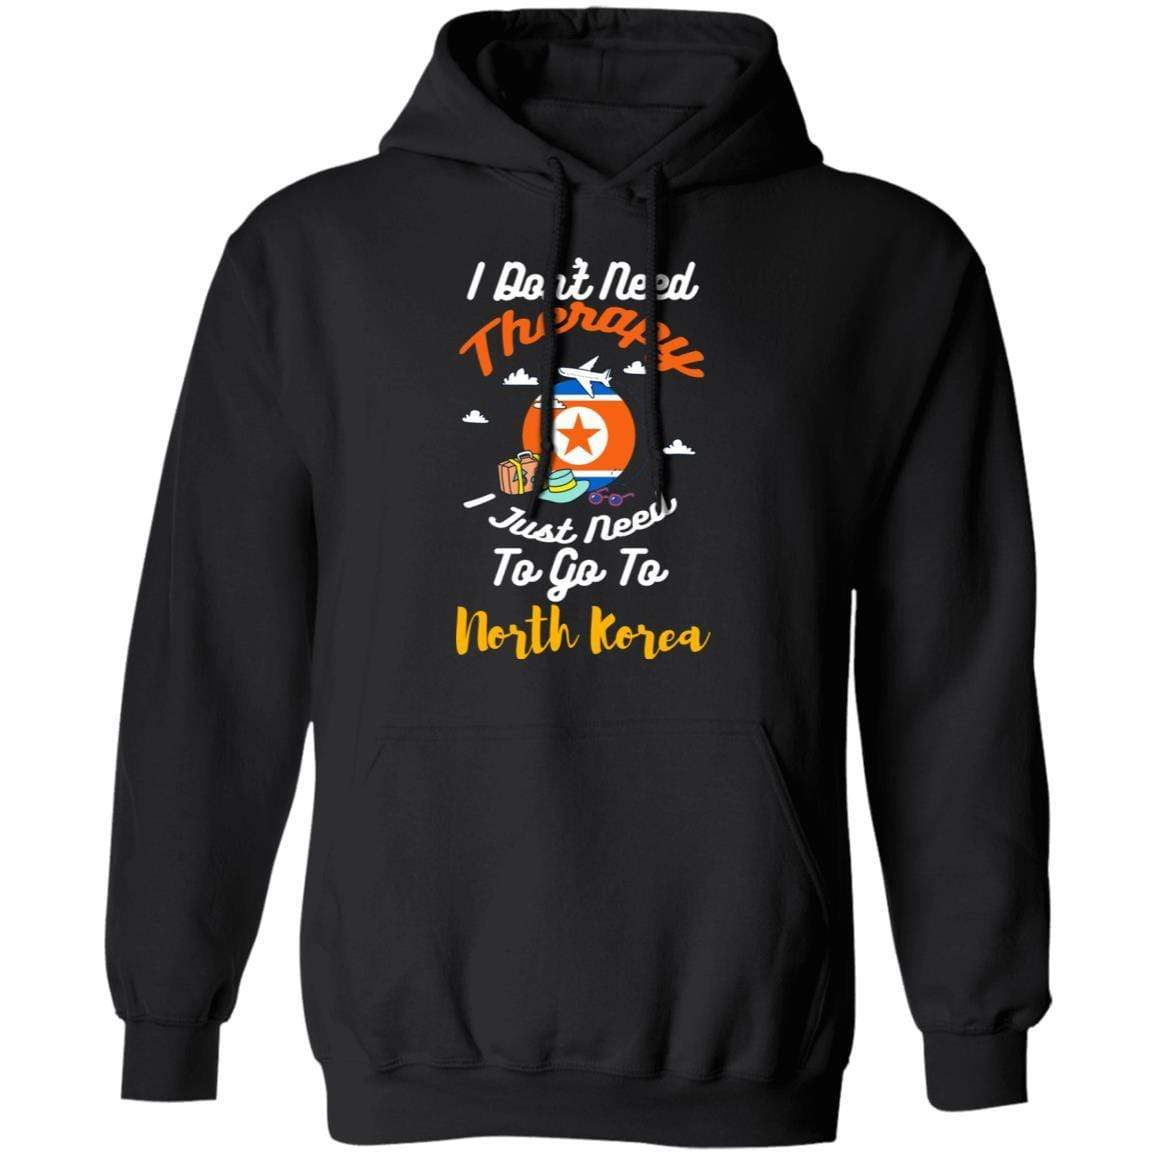 I Don't Need Therapy I Just Need To Go To North Korea T-Shirts, Hoodies 541-4740-87589182-23087 - Tee Ript